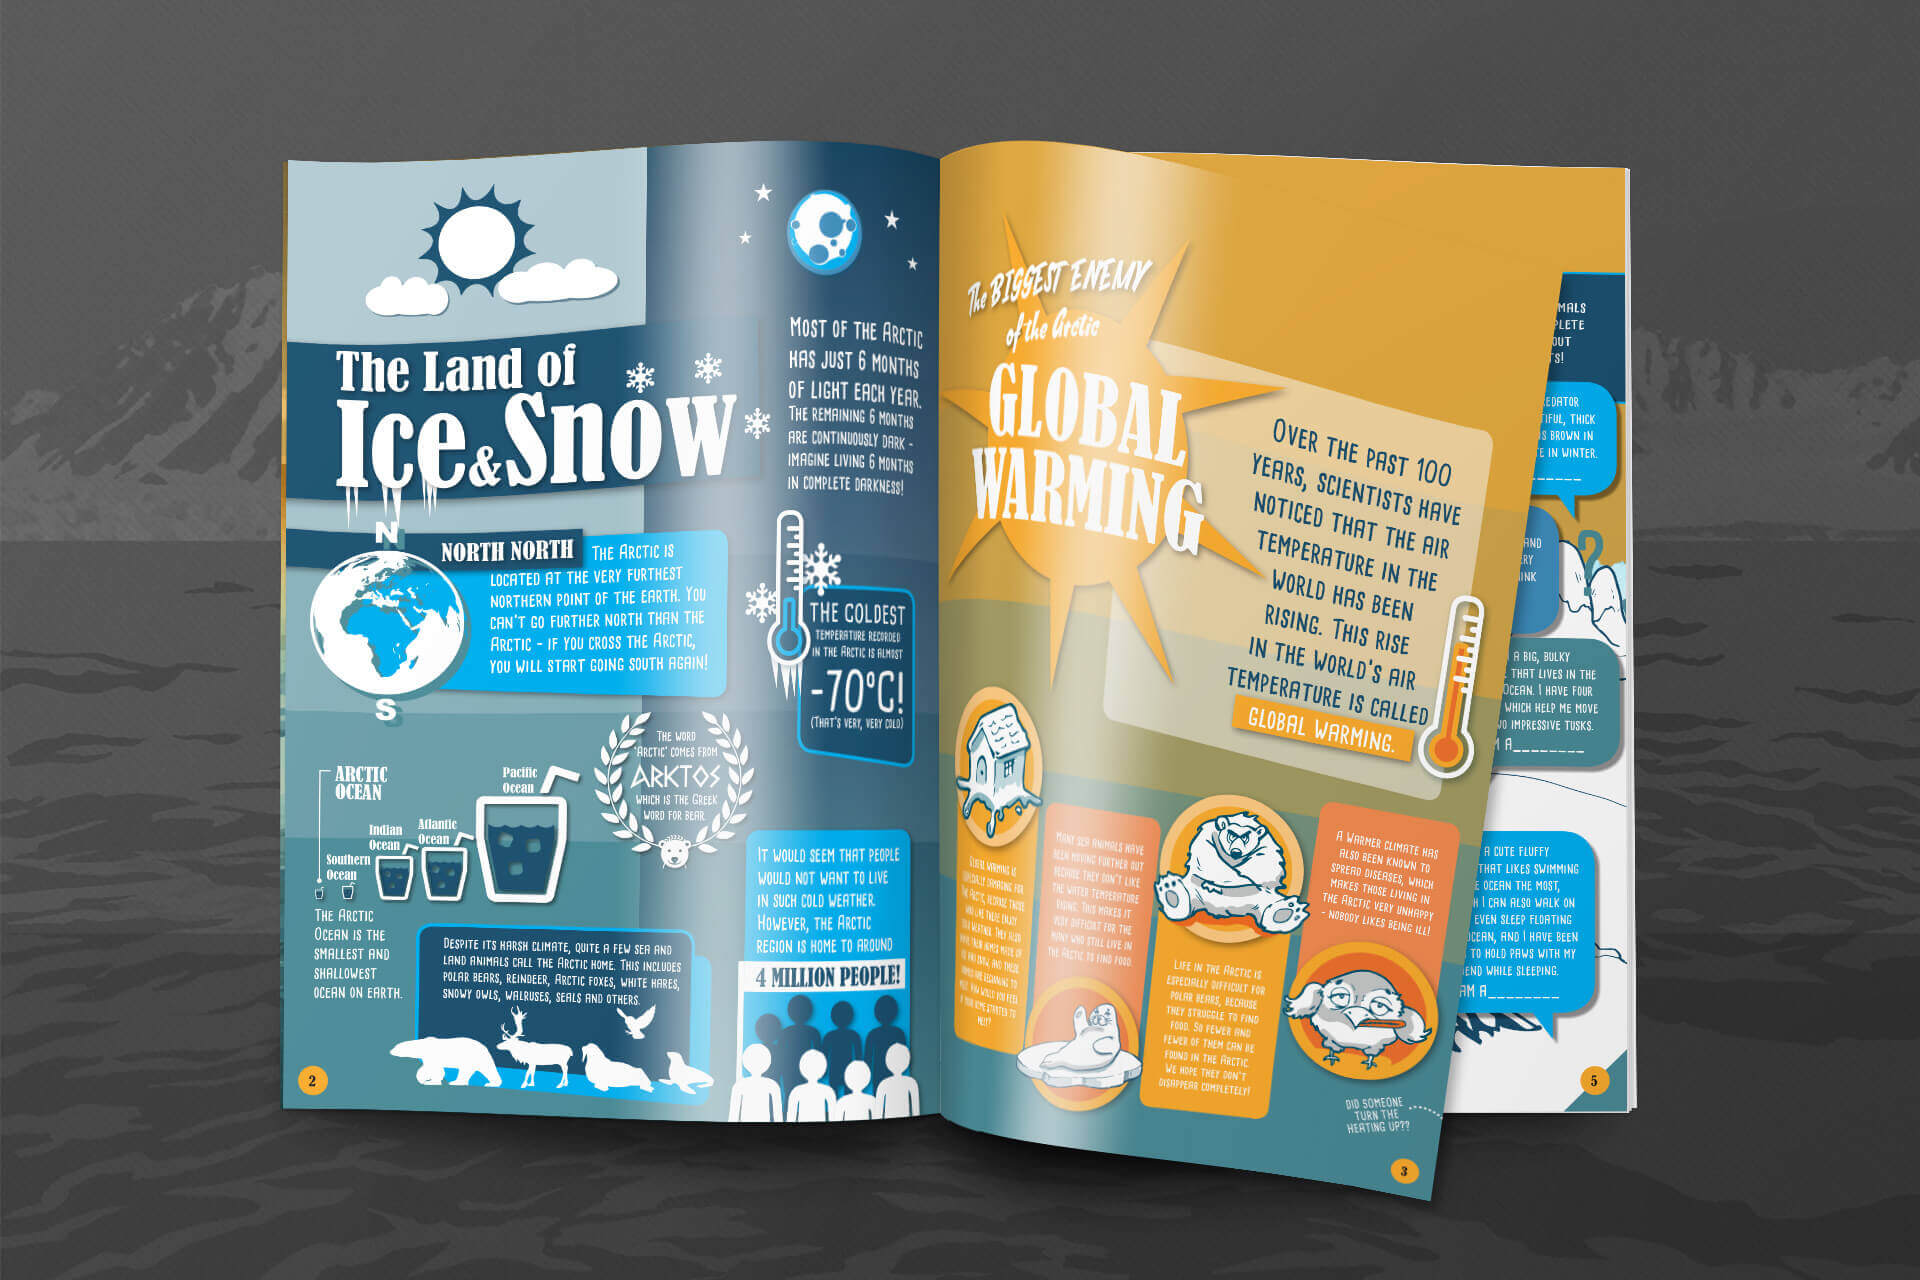 Worlds little helpers magazine opened to show facts on the Arctic and global warming